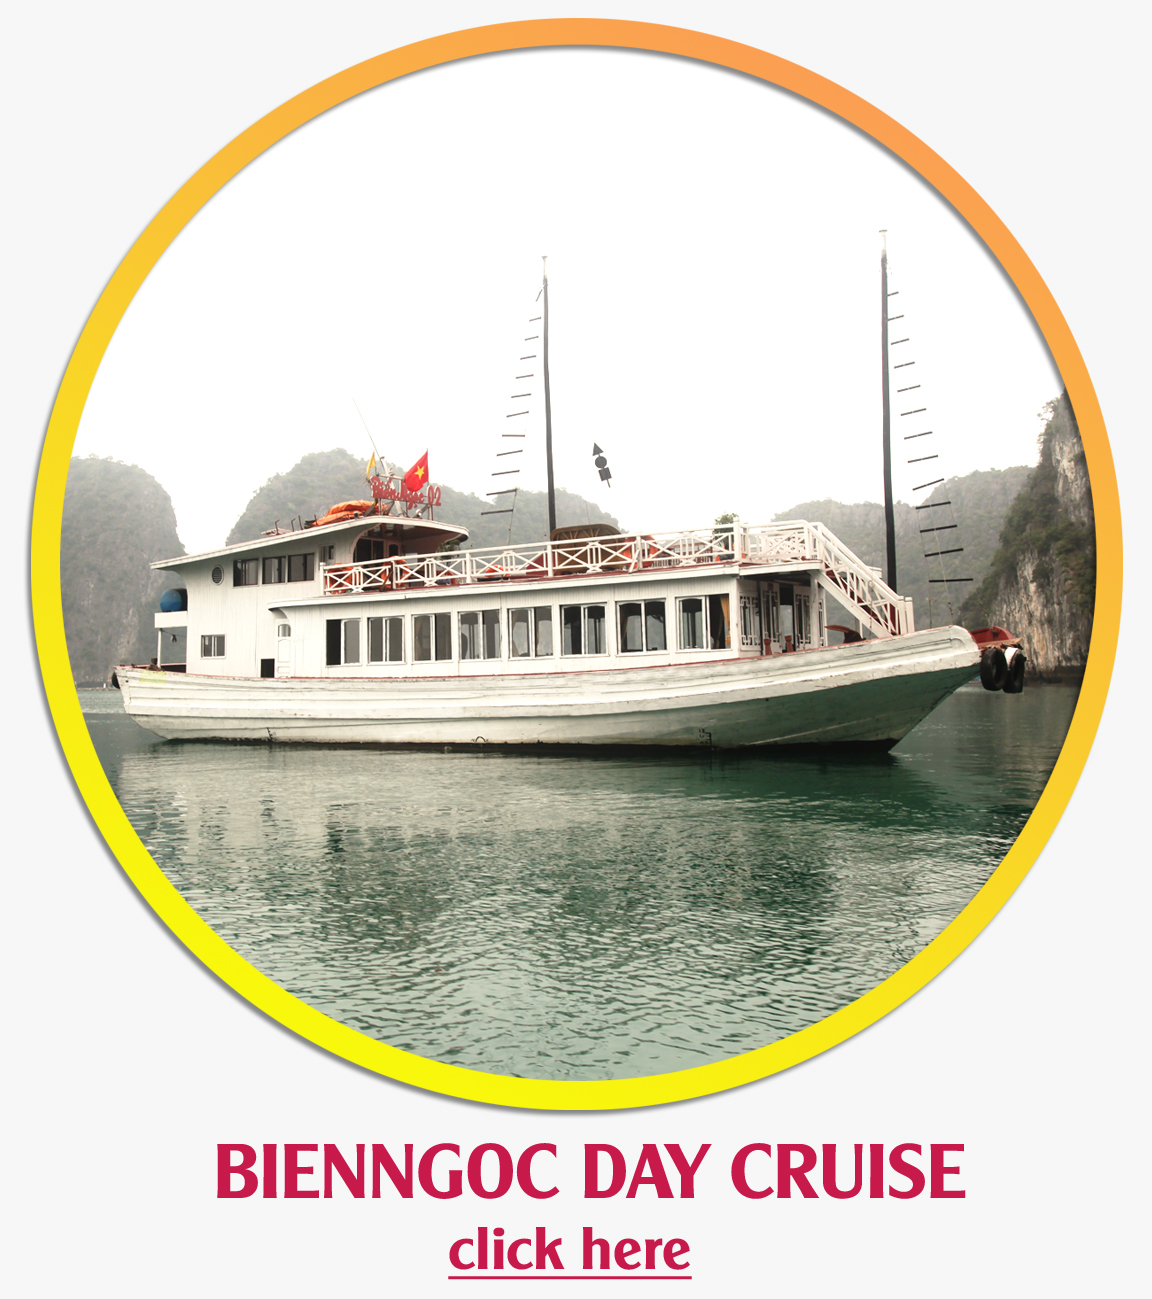 Bienngoc day cruise-click here